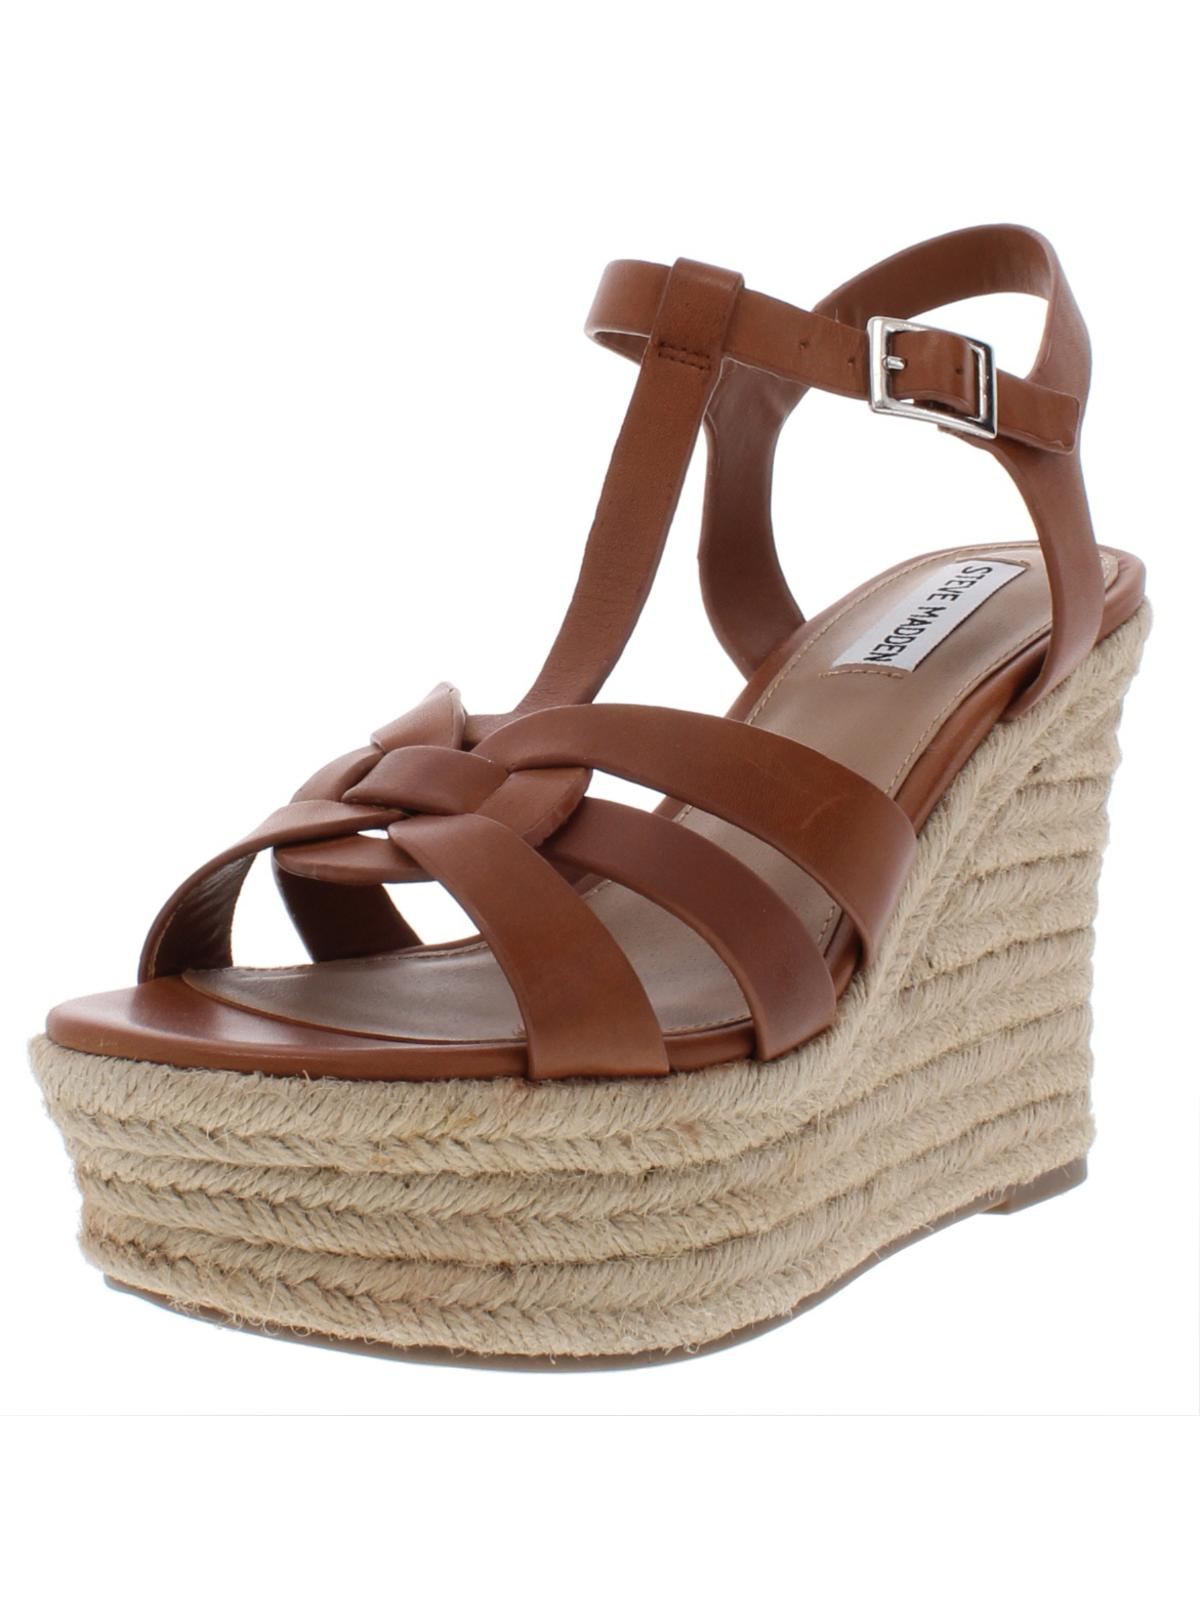 Steve Madden Womens Keesha Leather Strappy Espadrilles